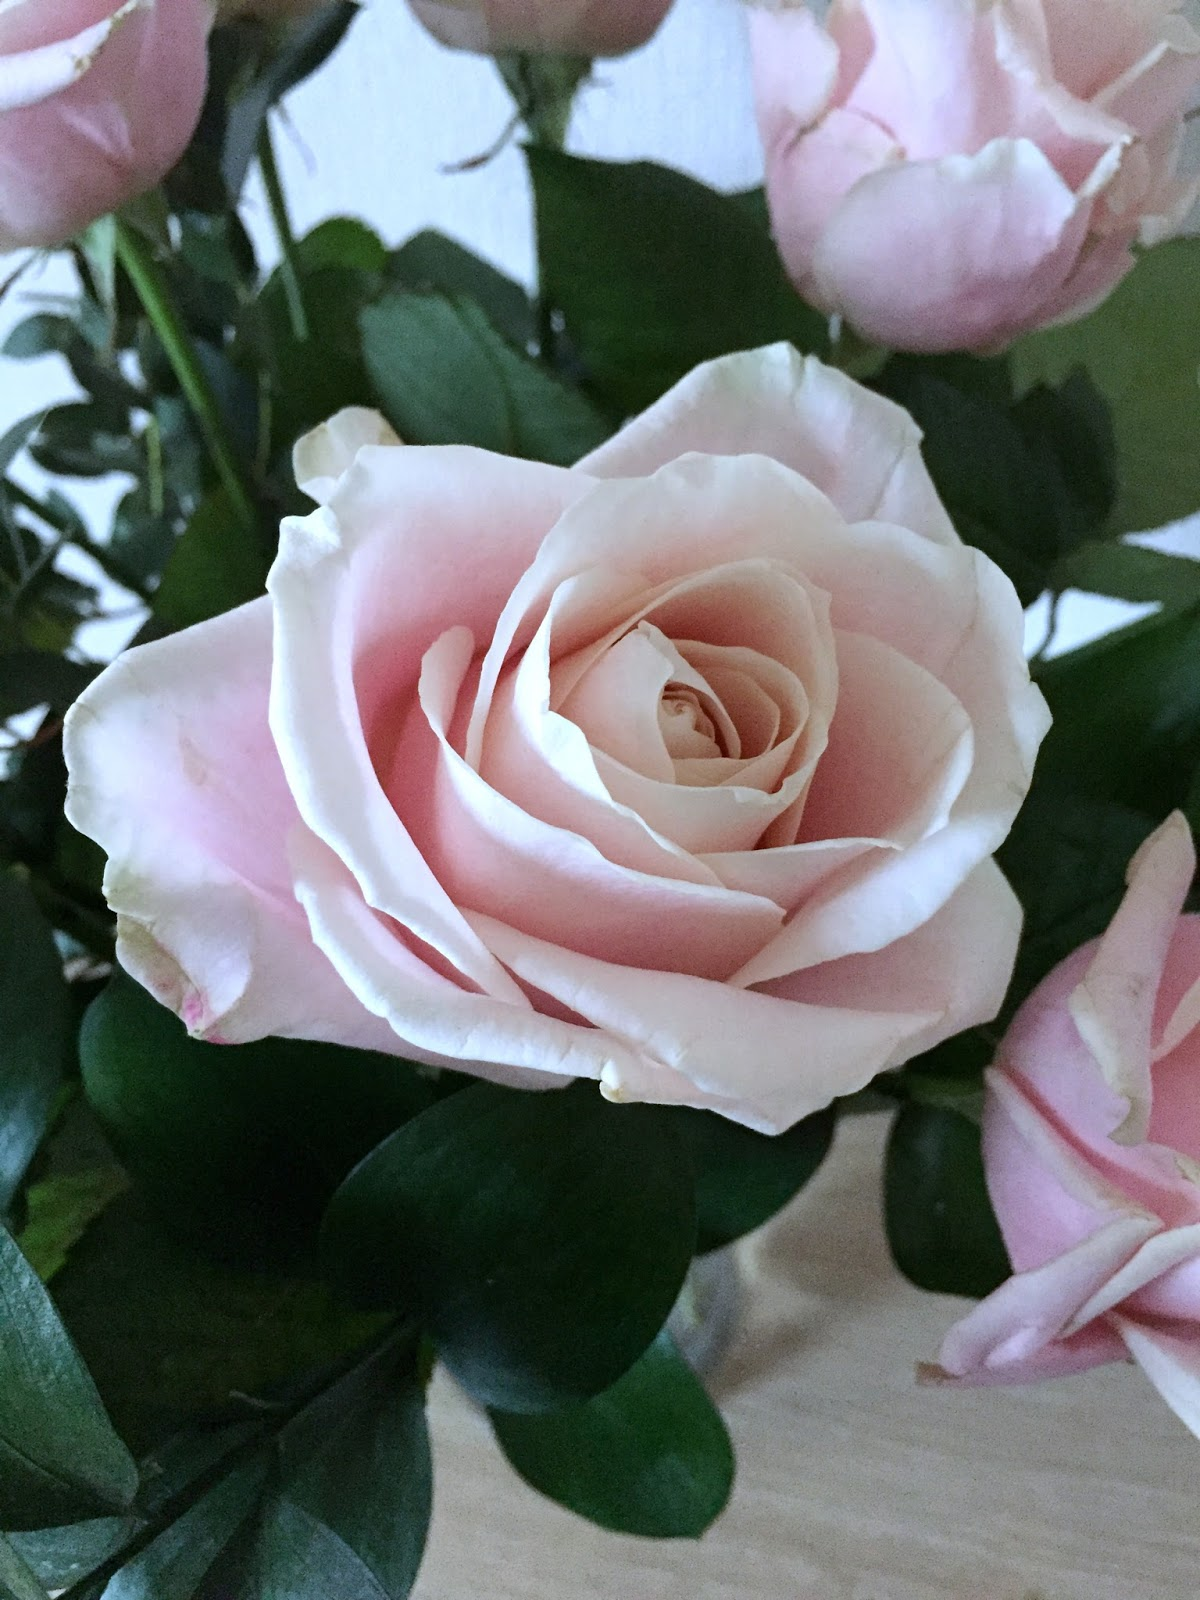 Get 33 off mothers day flowers with blossoming gifts mammaful there were 11 large pastel pink roses in my bouquet and some green ruscus too the bouquet was absolutely stunning roses are one of my favourite flowers buycottarizona Choice Image